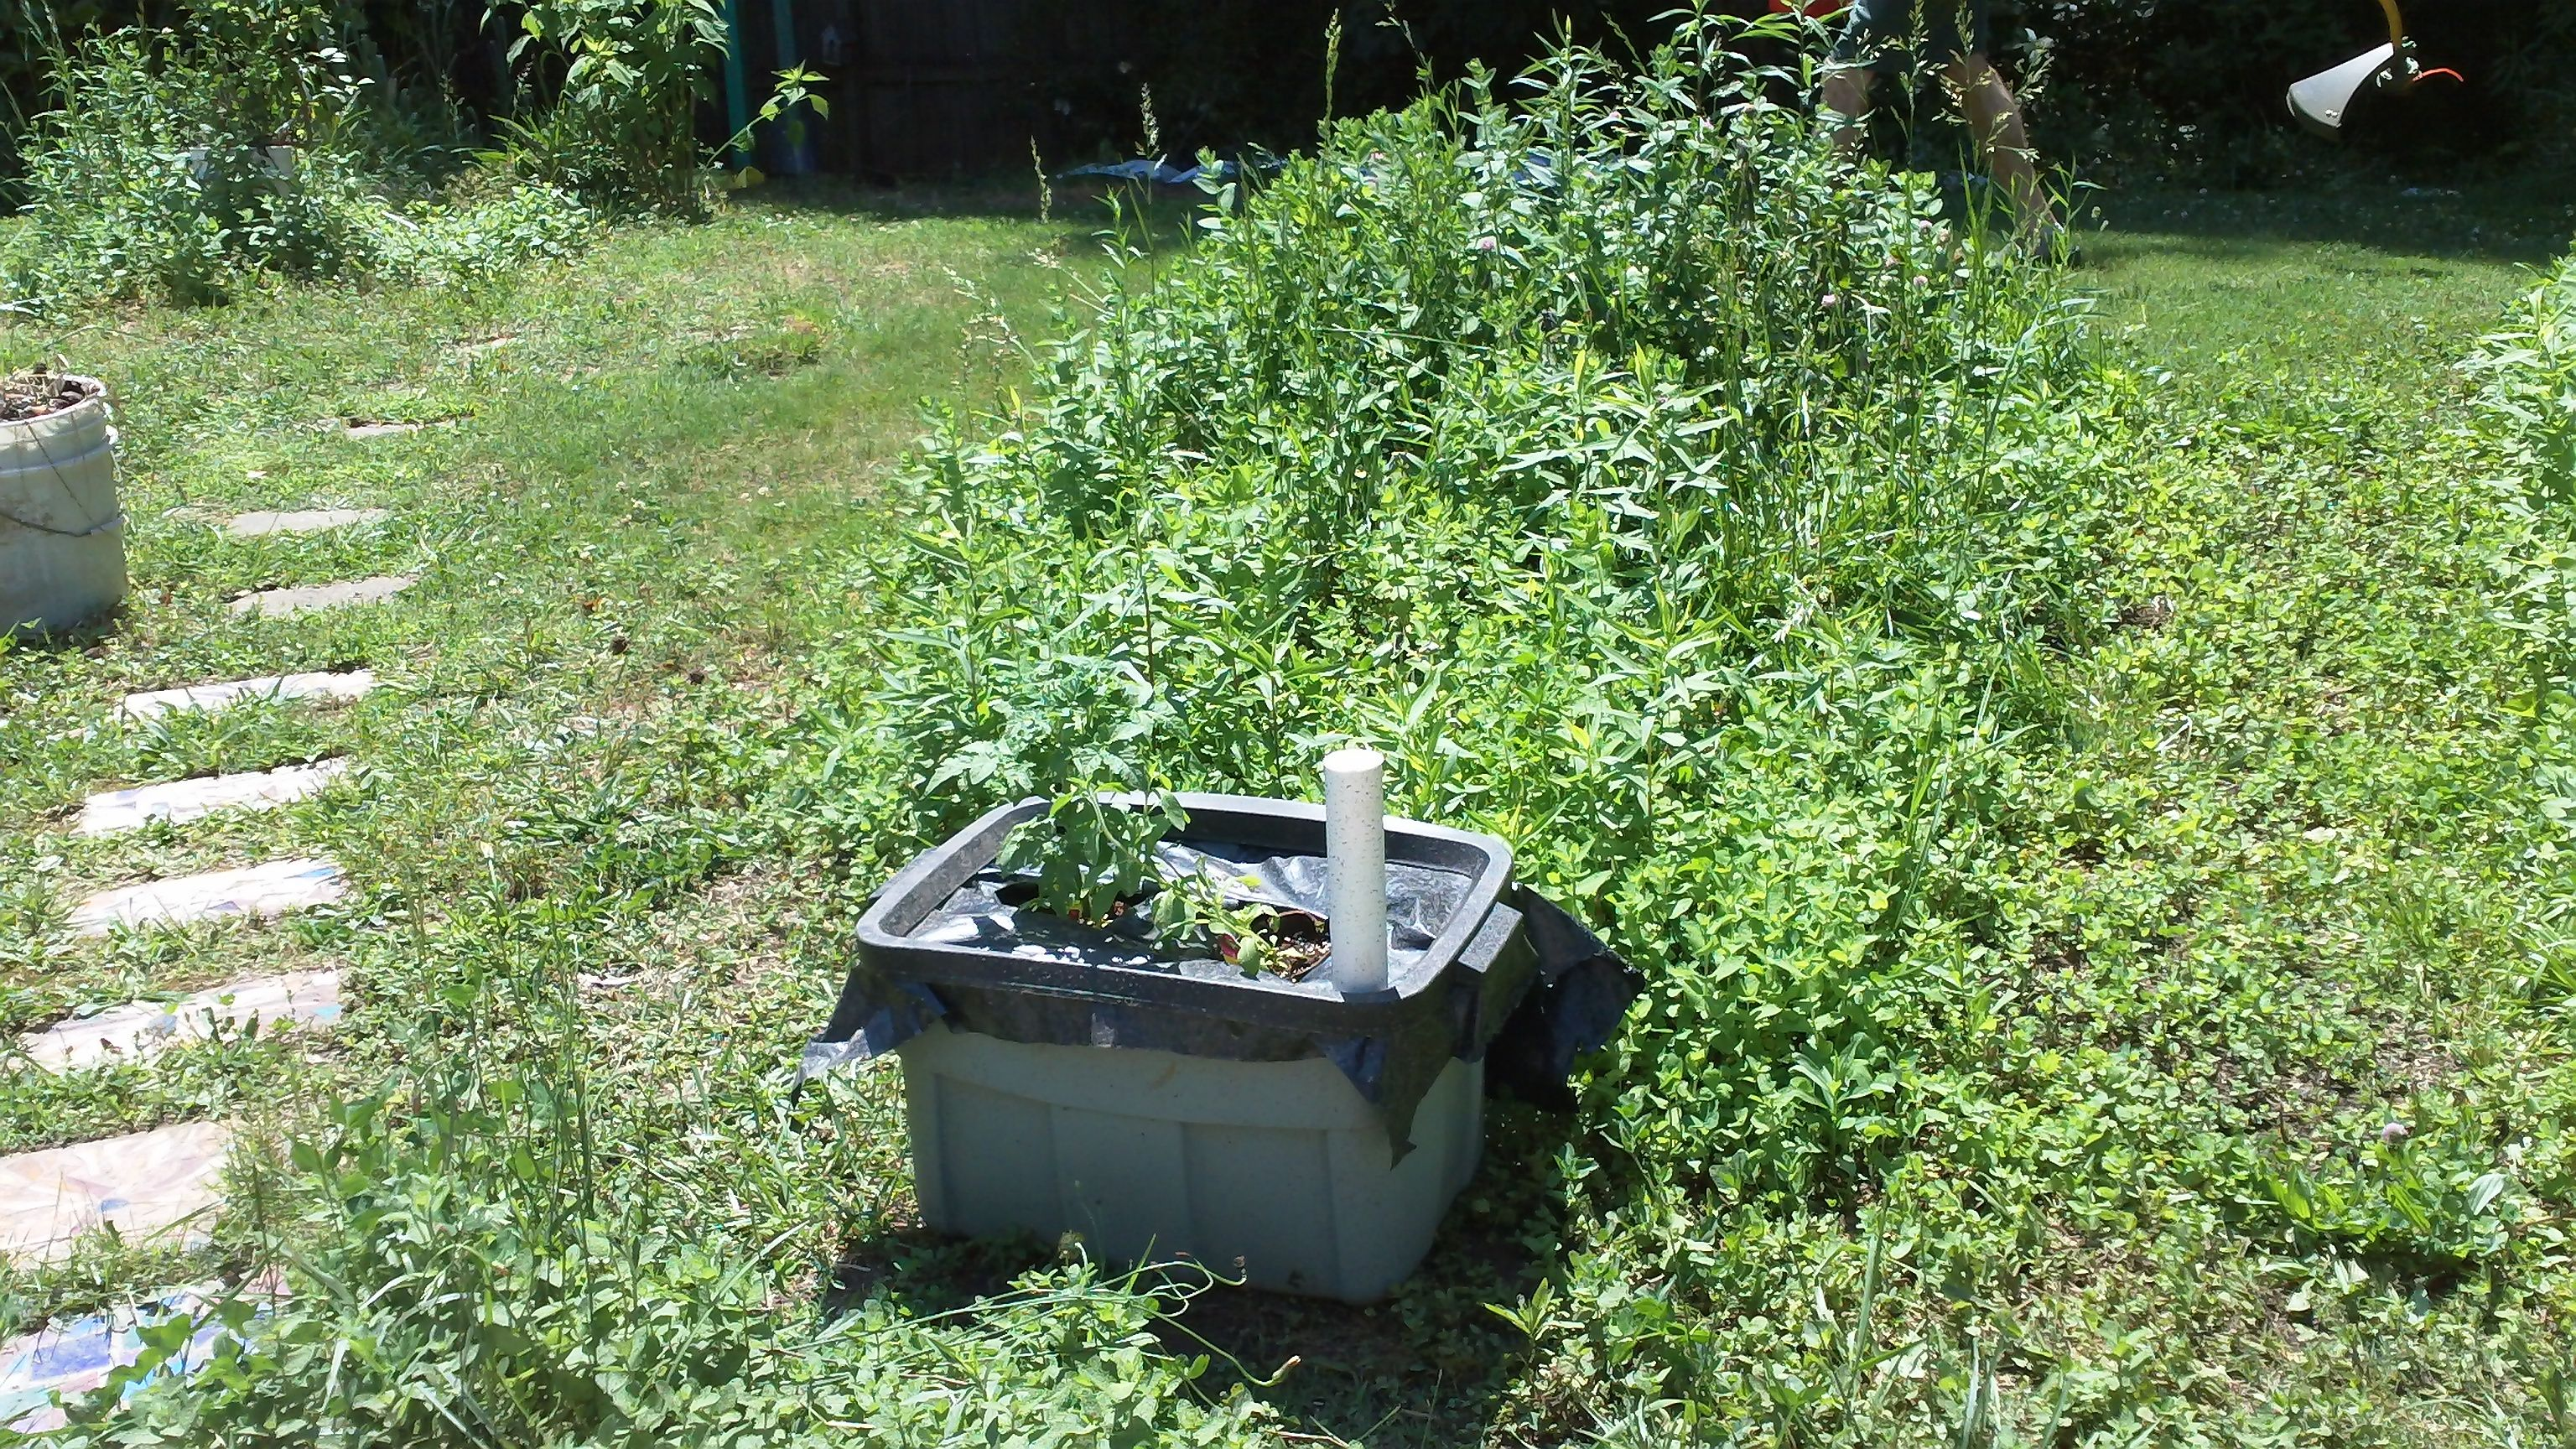 Consider, that False bottom for garden containers